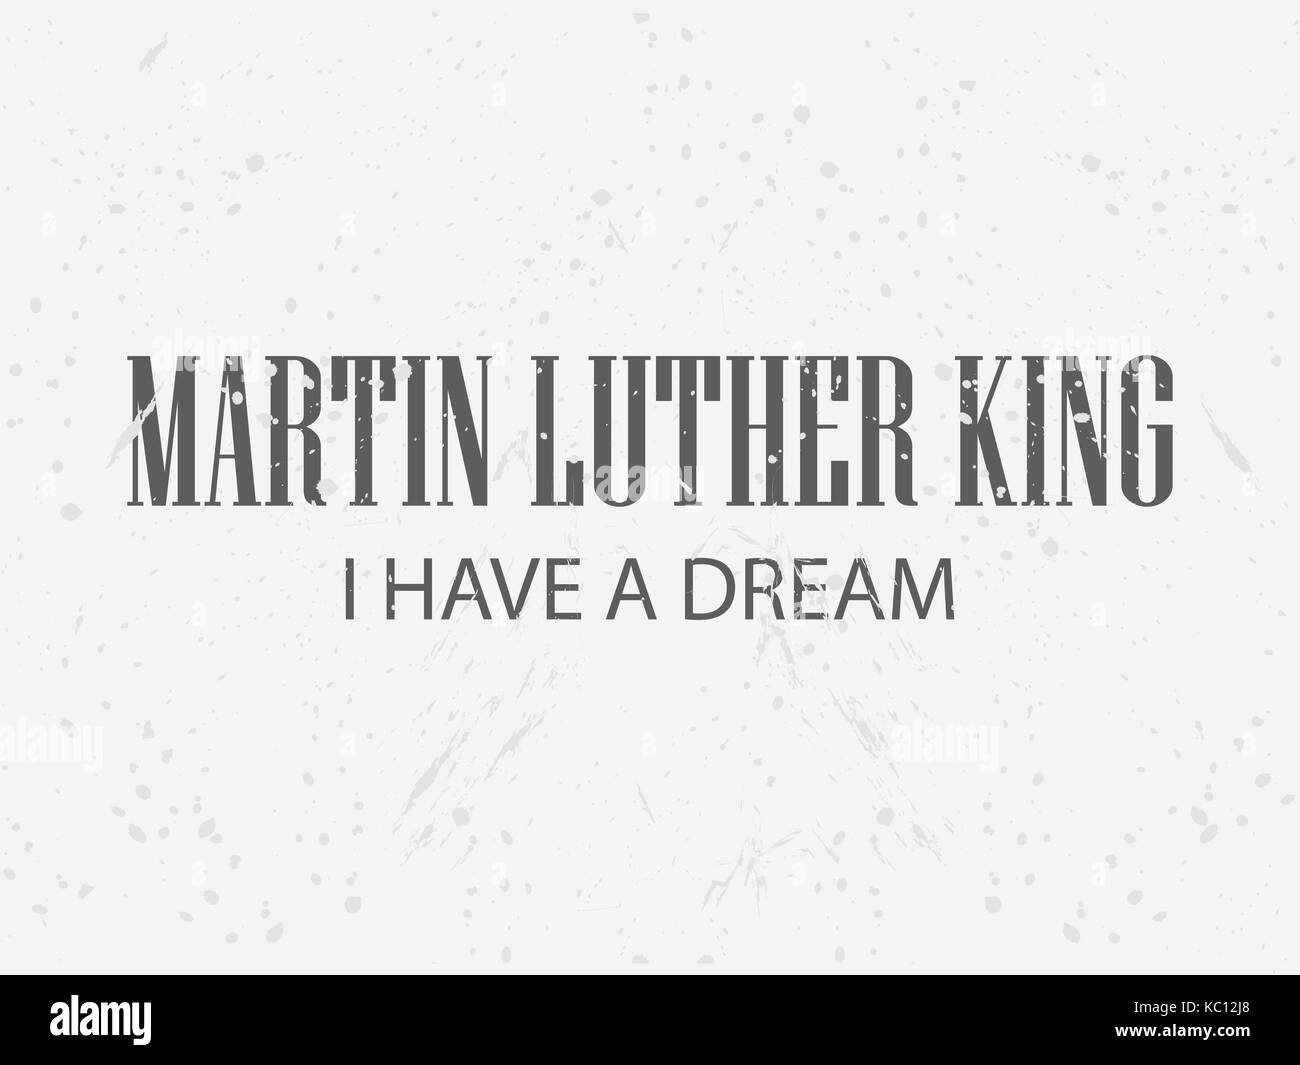 i have a dream martin luther king pdf